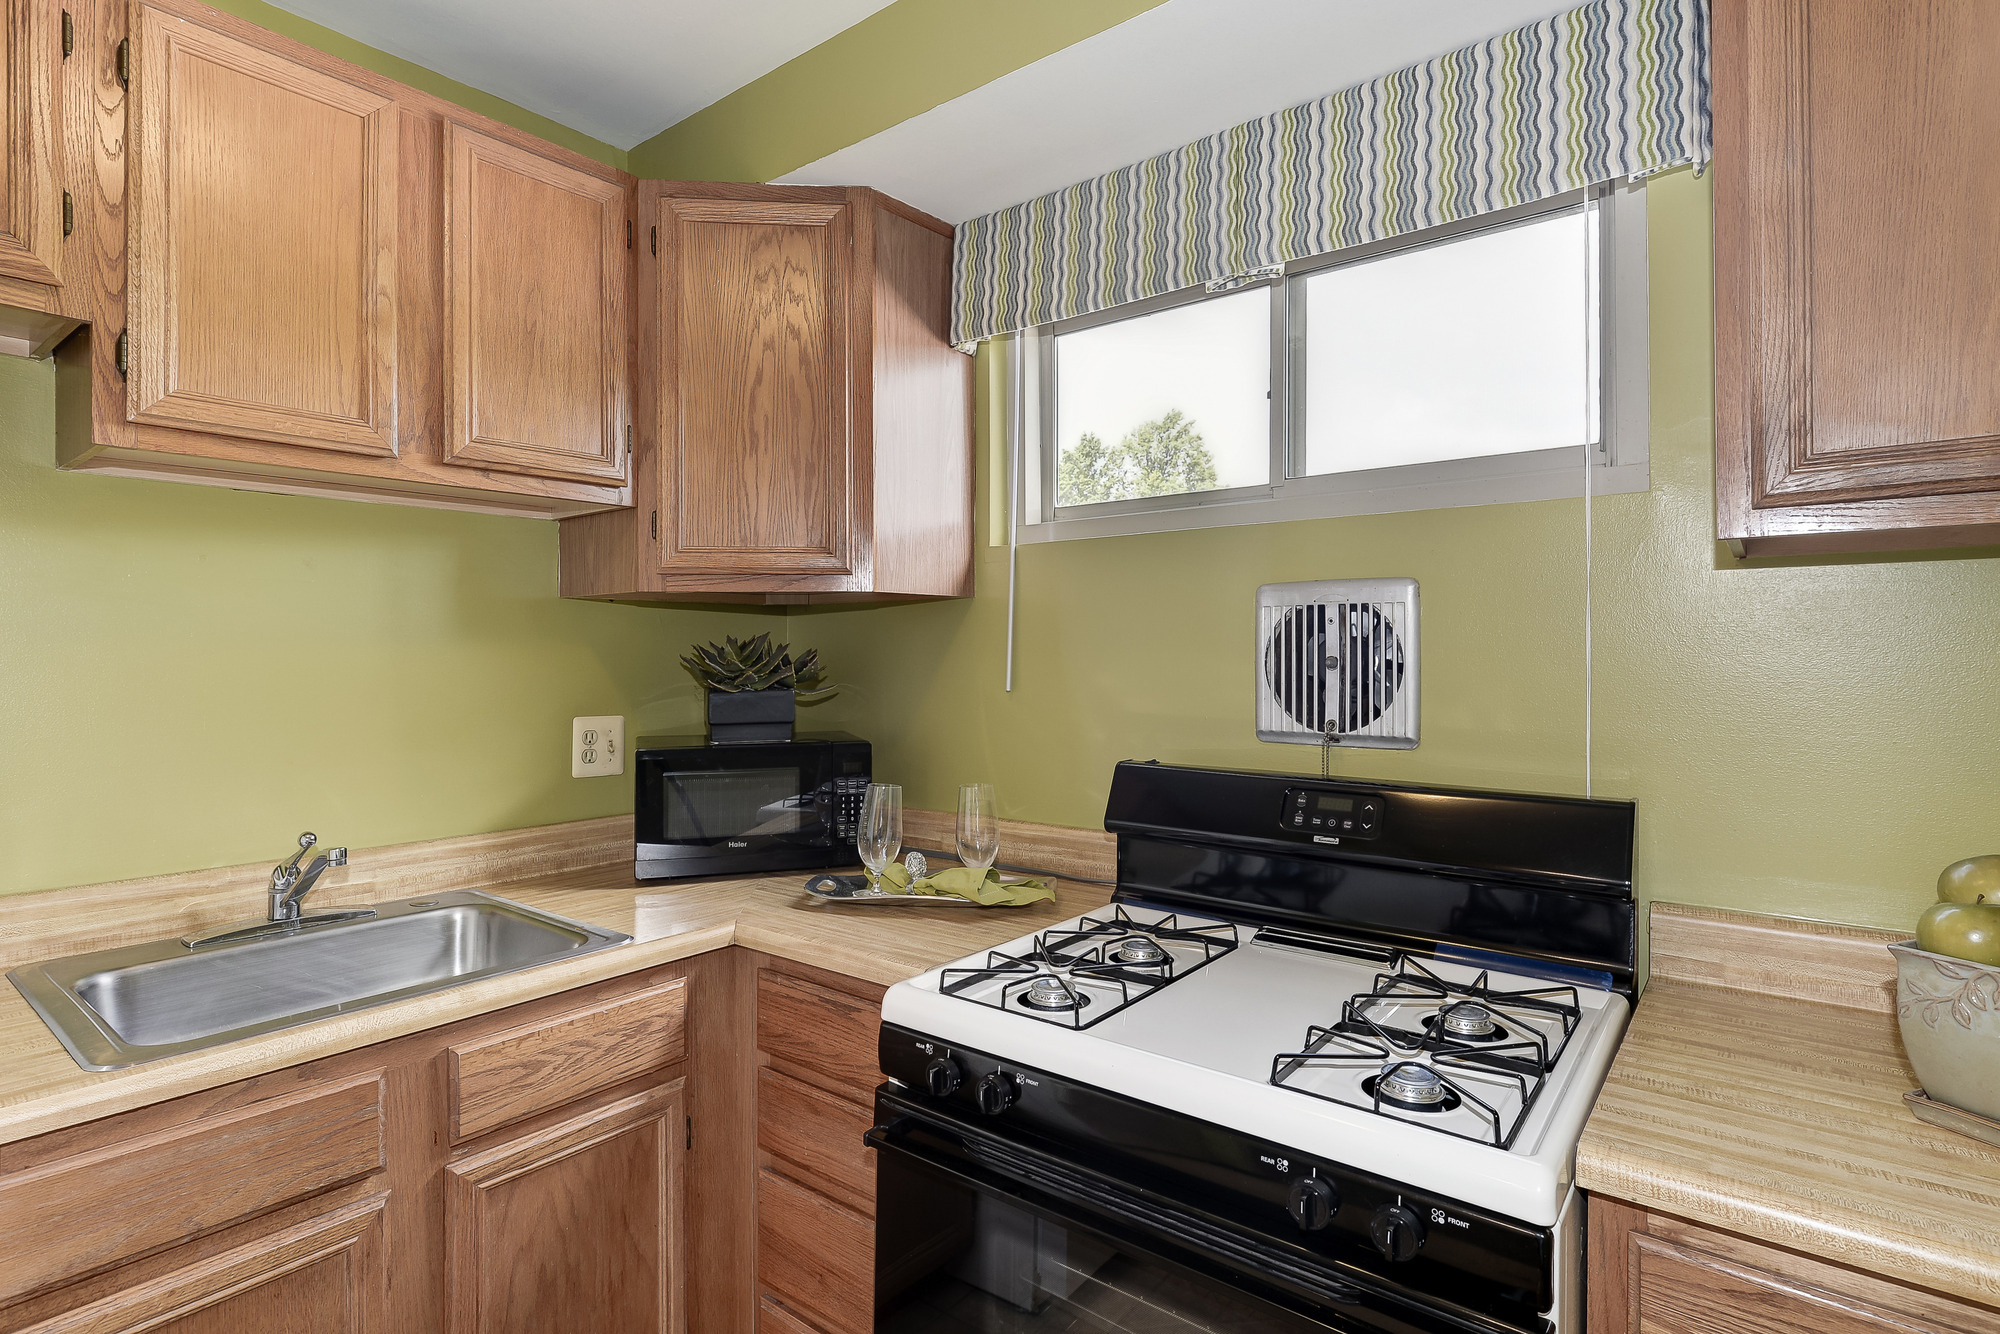 Barclay Square Apartments in Baltimore, MD - Kitchen